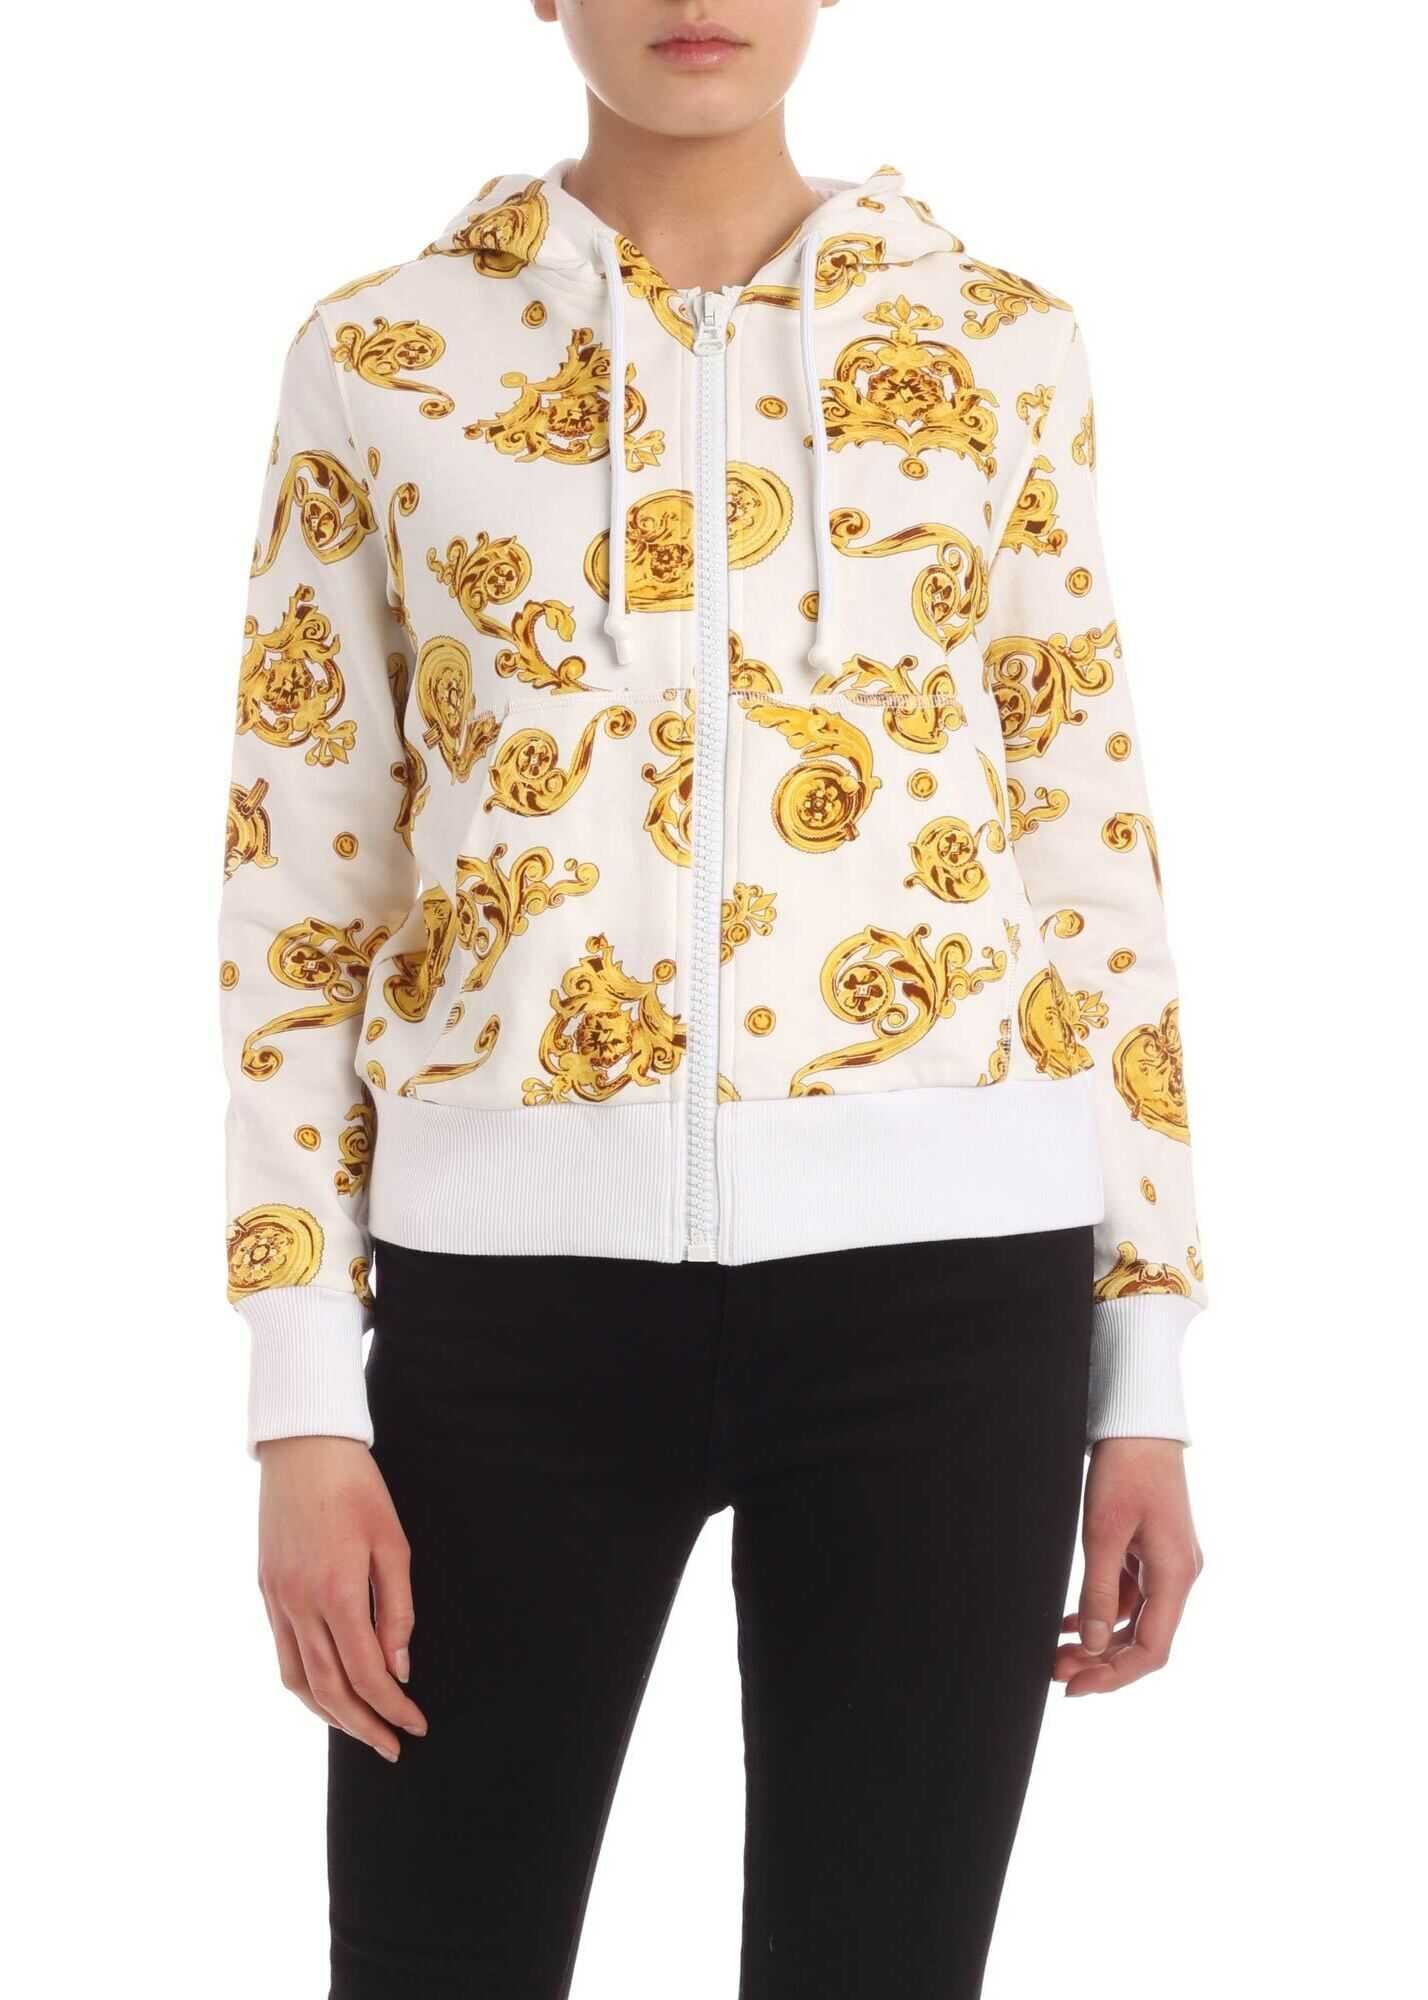 Versace Jeans Couture White Hoodie Crop With Barocco Print White